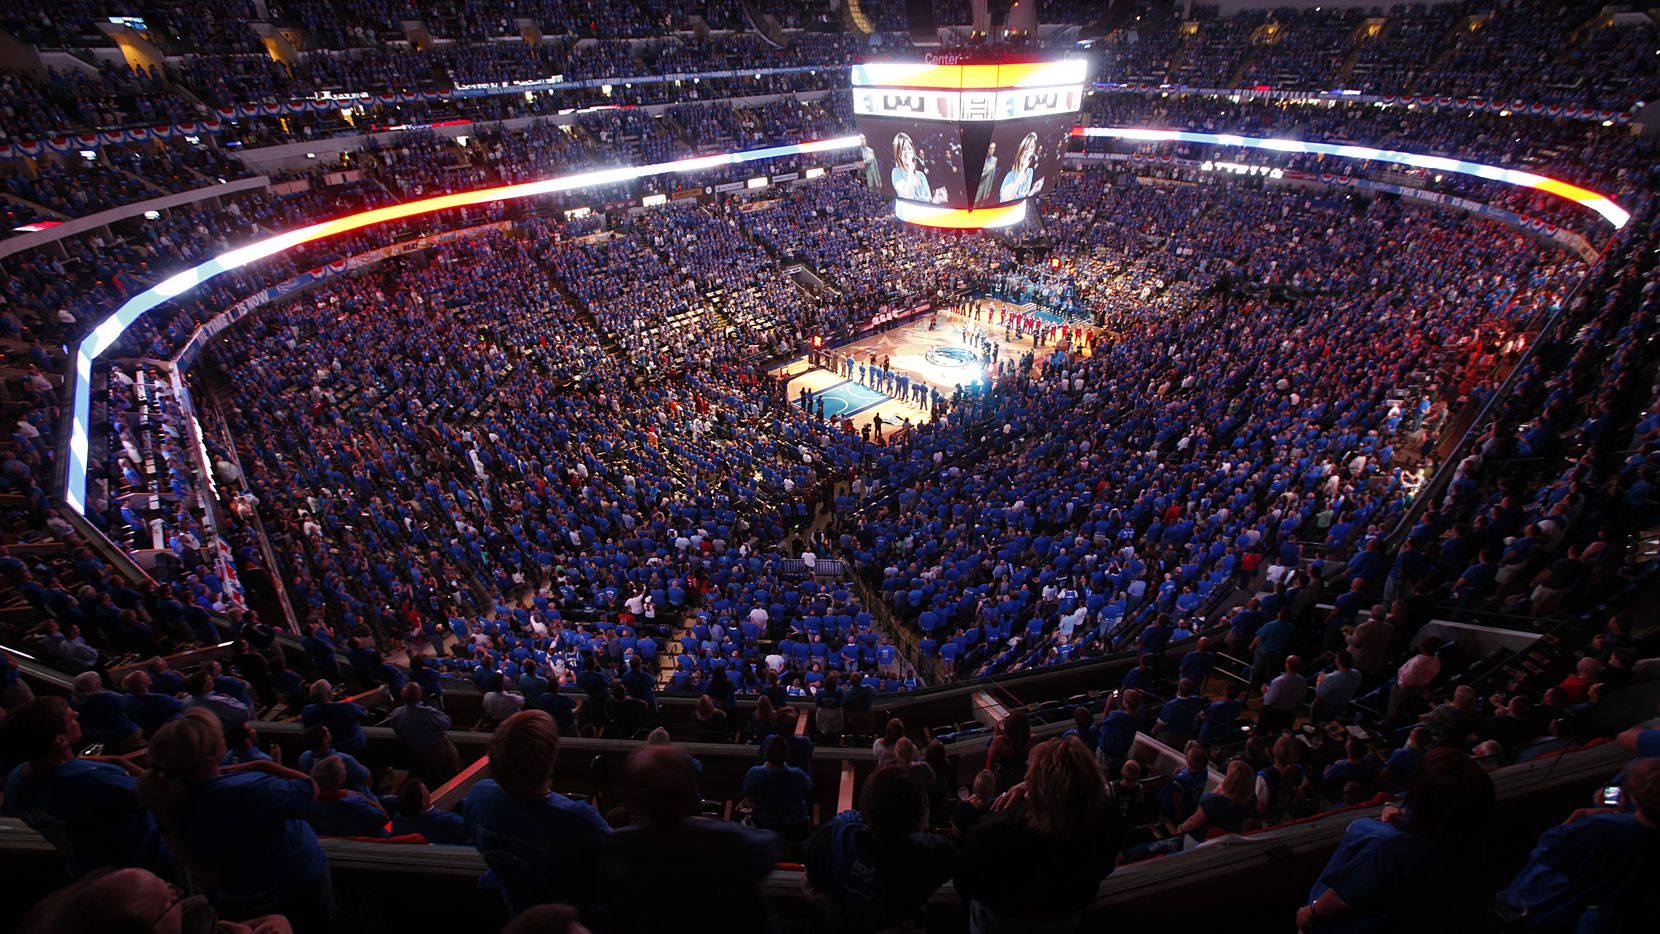 Kelly Clarkson sung the National Anthem to a sold out crowd  before Game 4 of the NBA Finals between the Dallas Mavericks and Miami Heat at American Airlines Center Tuesday, June 7, 2011 in Dallas. (Tom Fox/The Dallas Morning News)